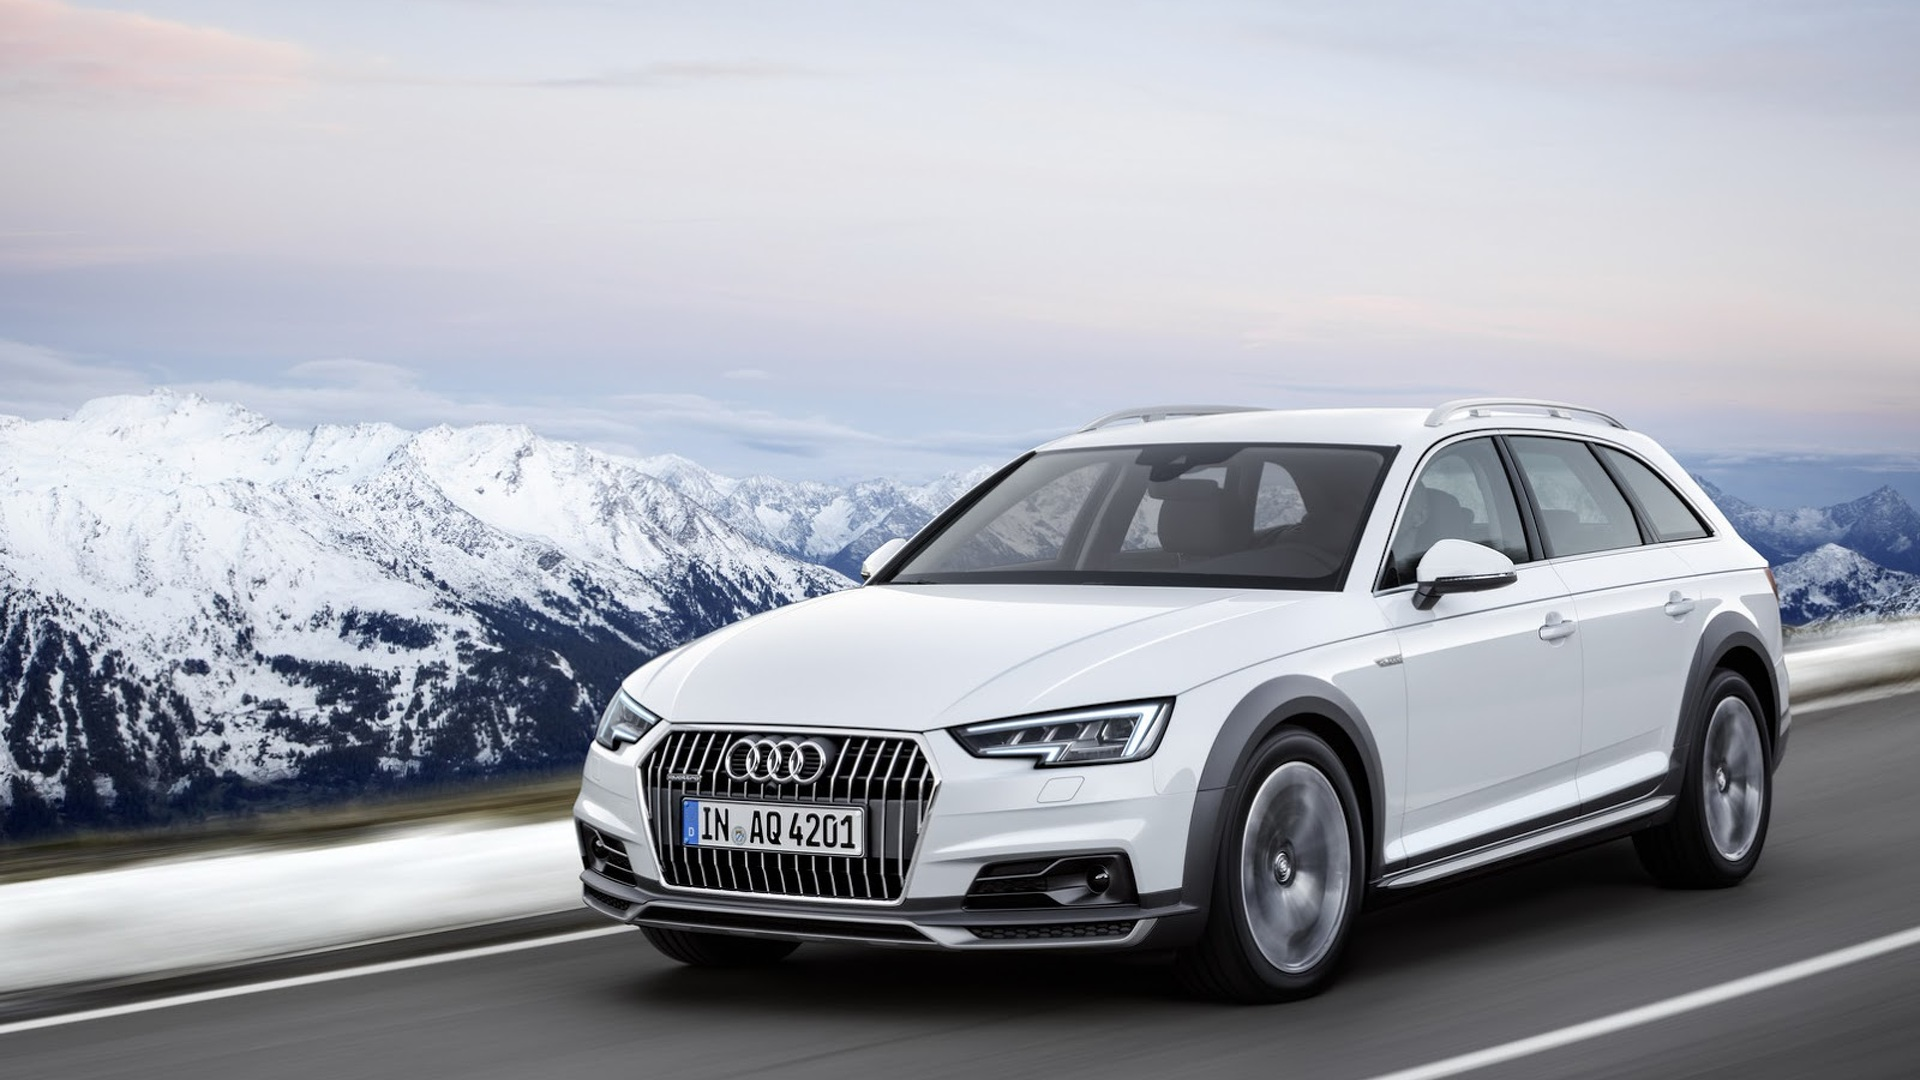 car allroad news specs for sale photos radka blog makes audi s